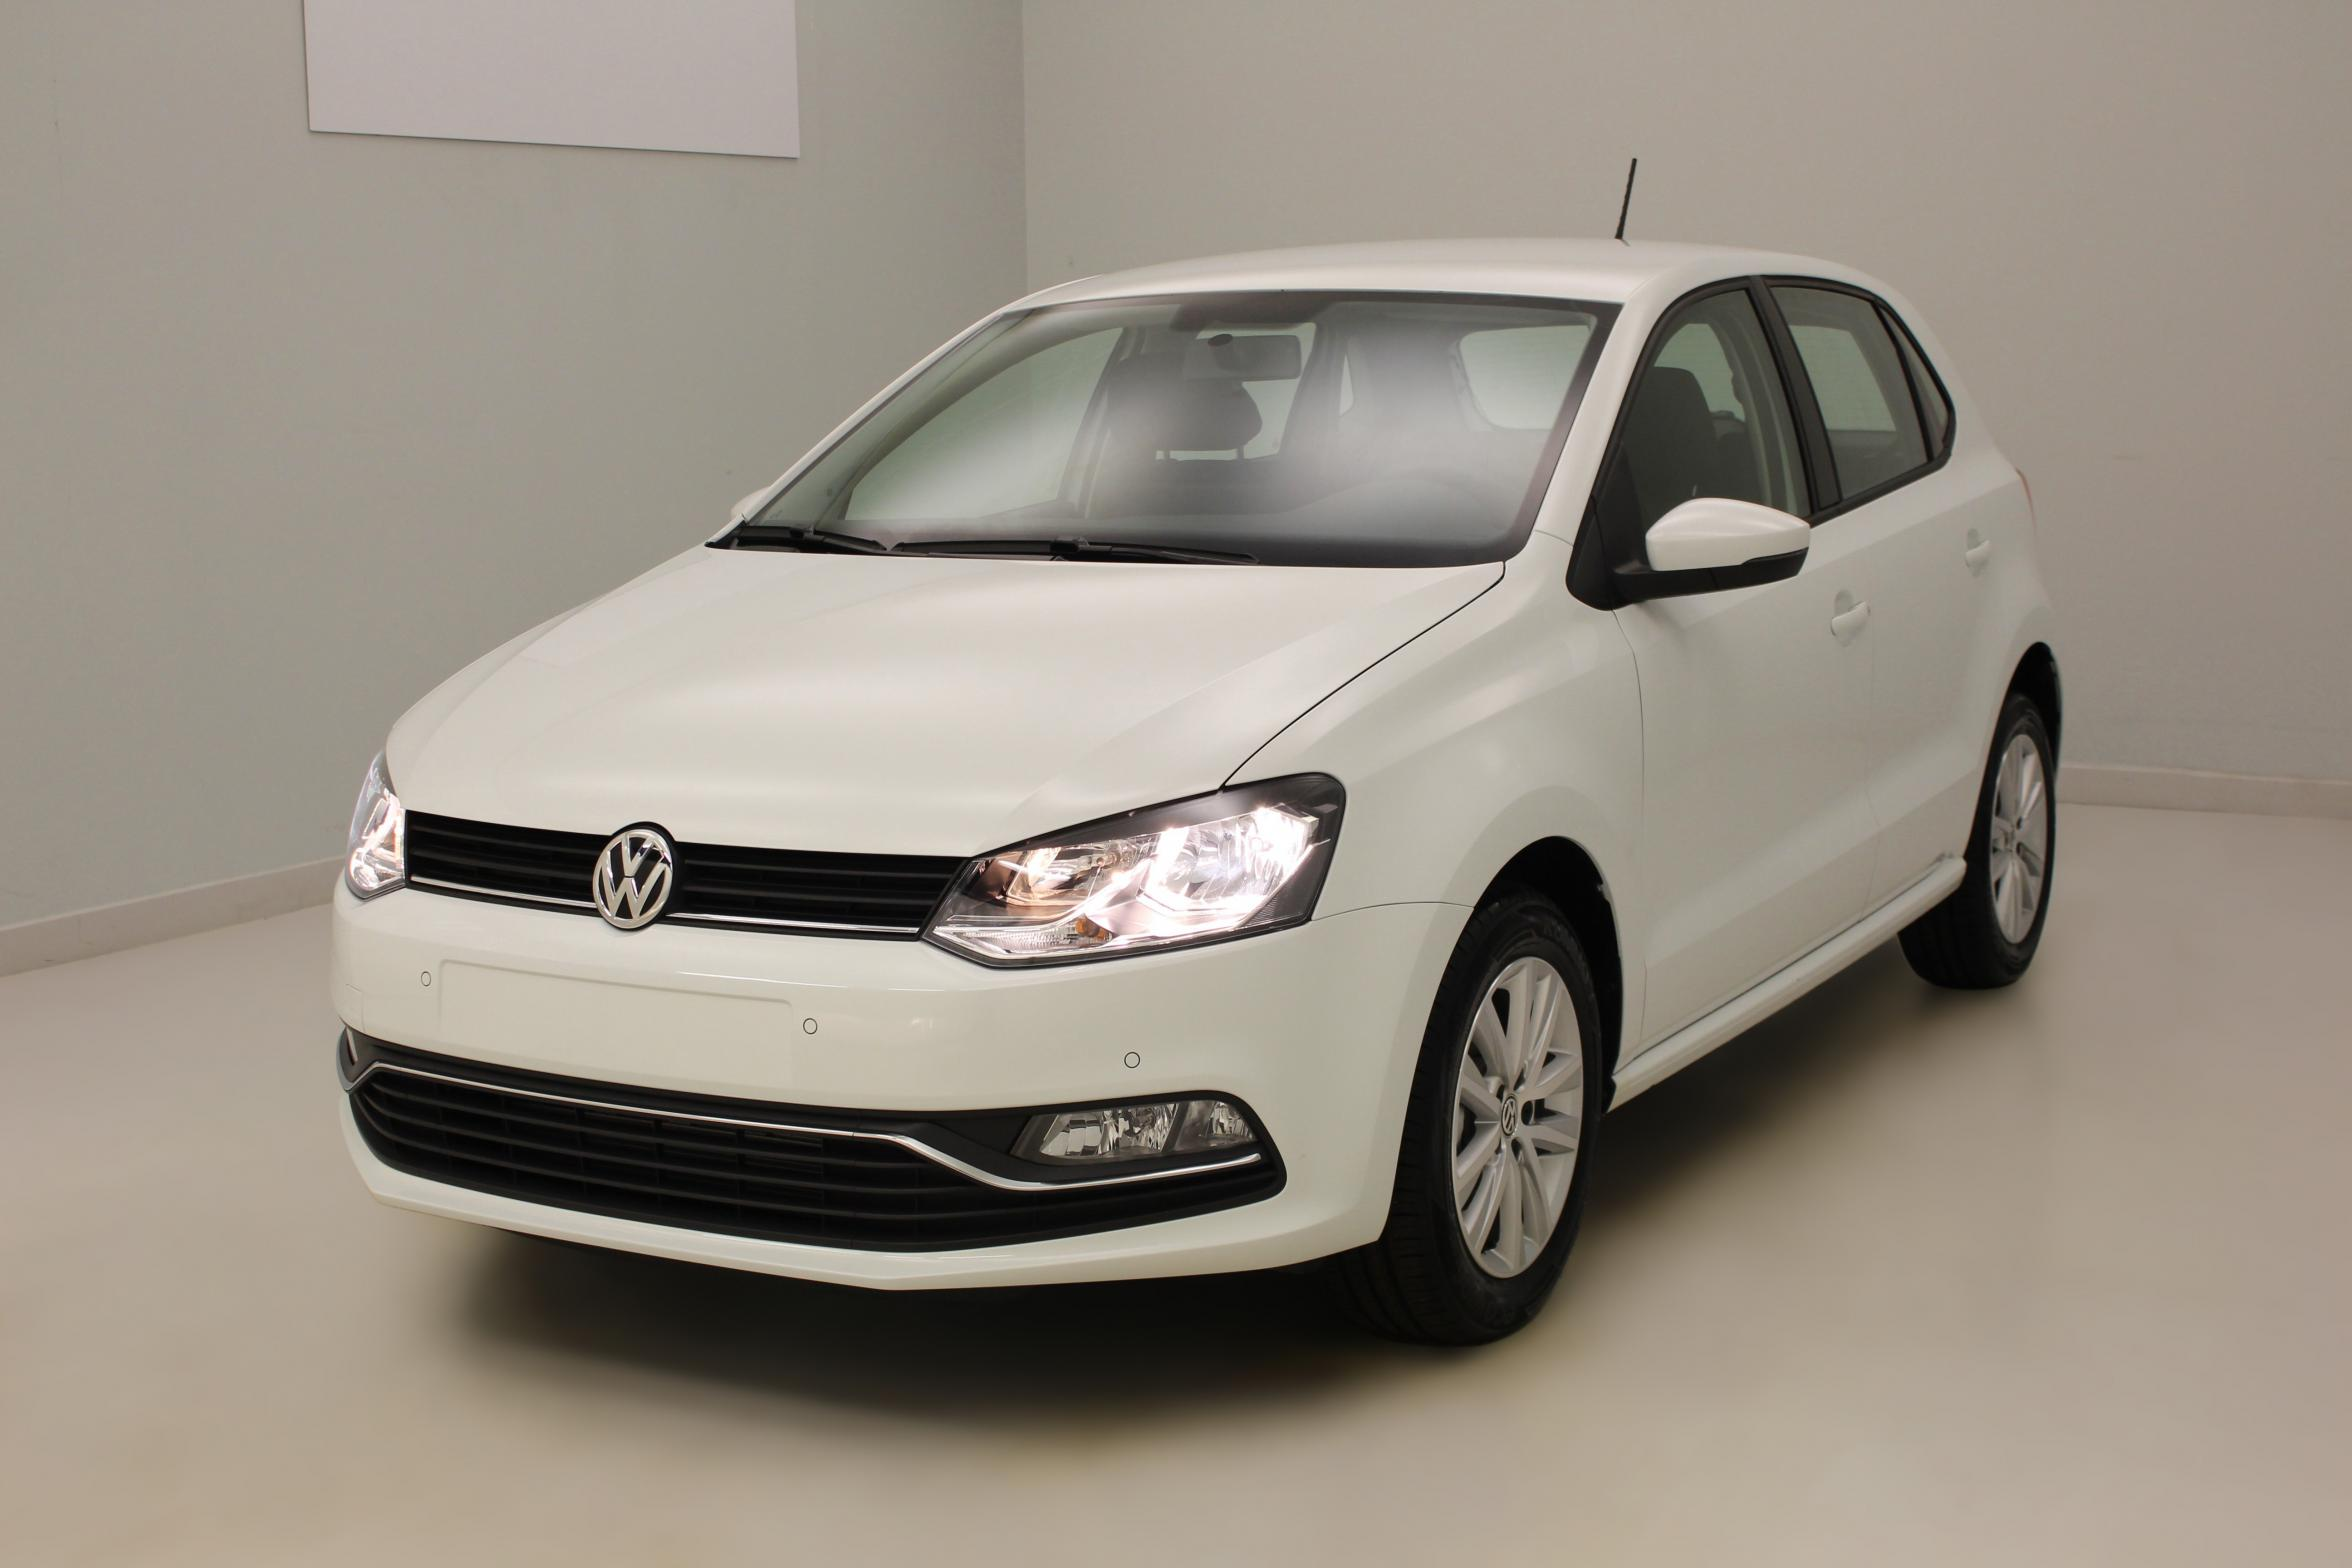 VOLKSWAGEN Nouvelle Polo 1.2 TSI 90 BlueMotion Technology Confortline Blanc Pur + Discover Media avec options